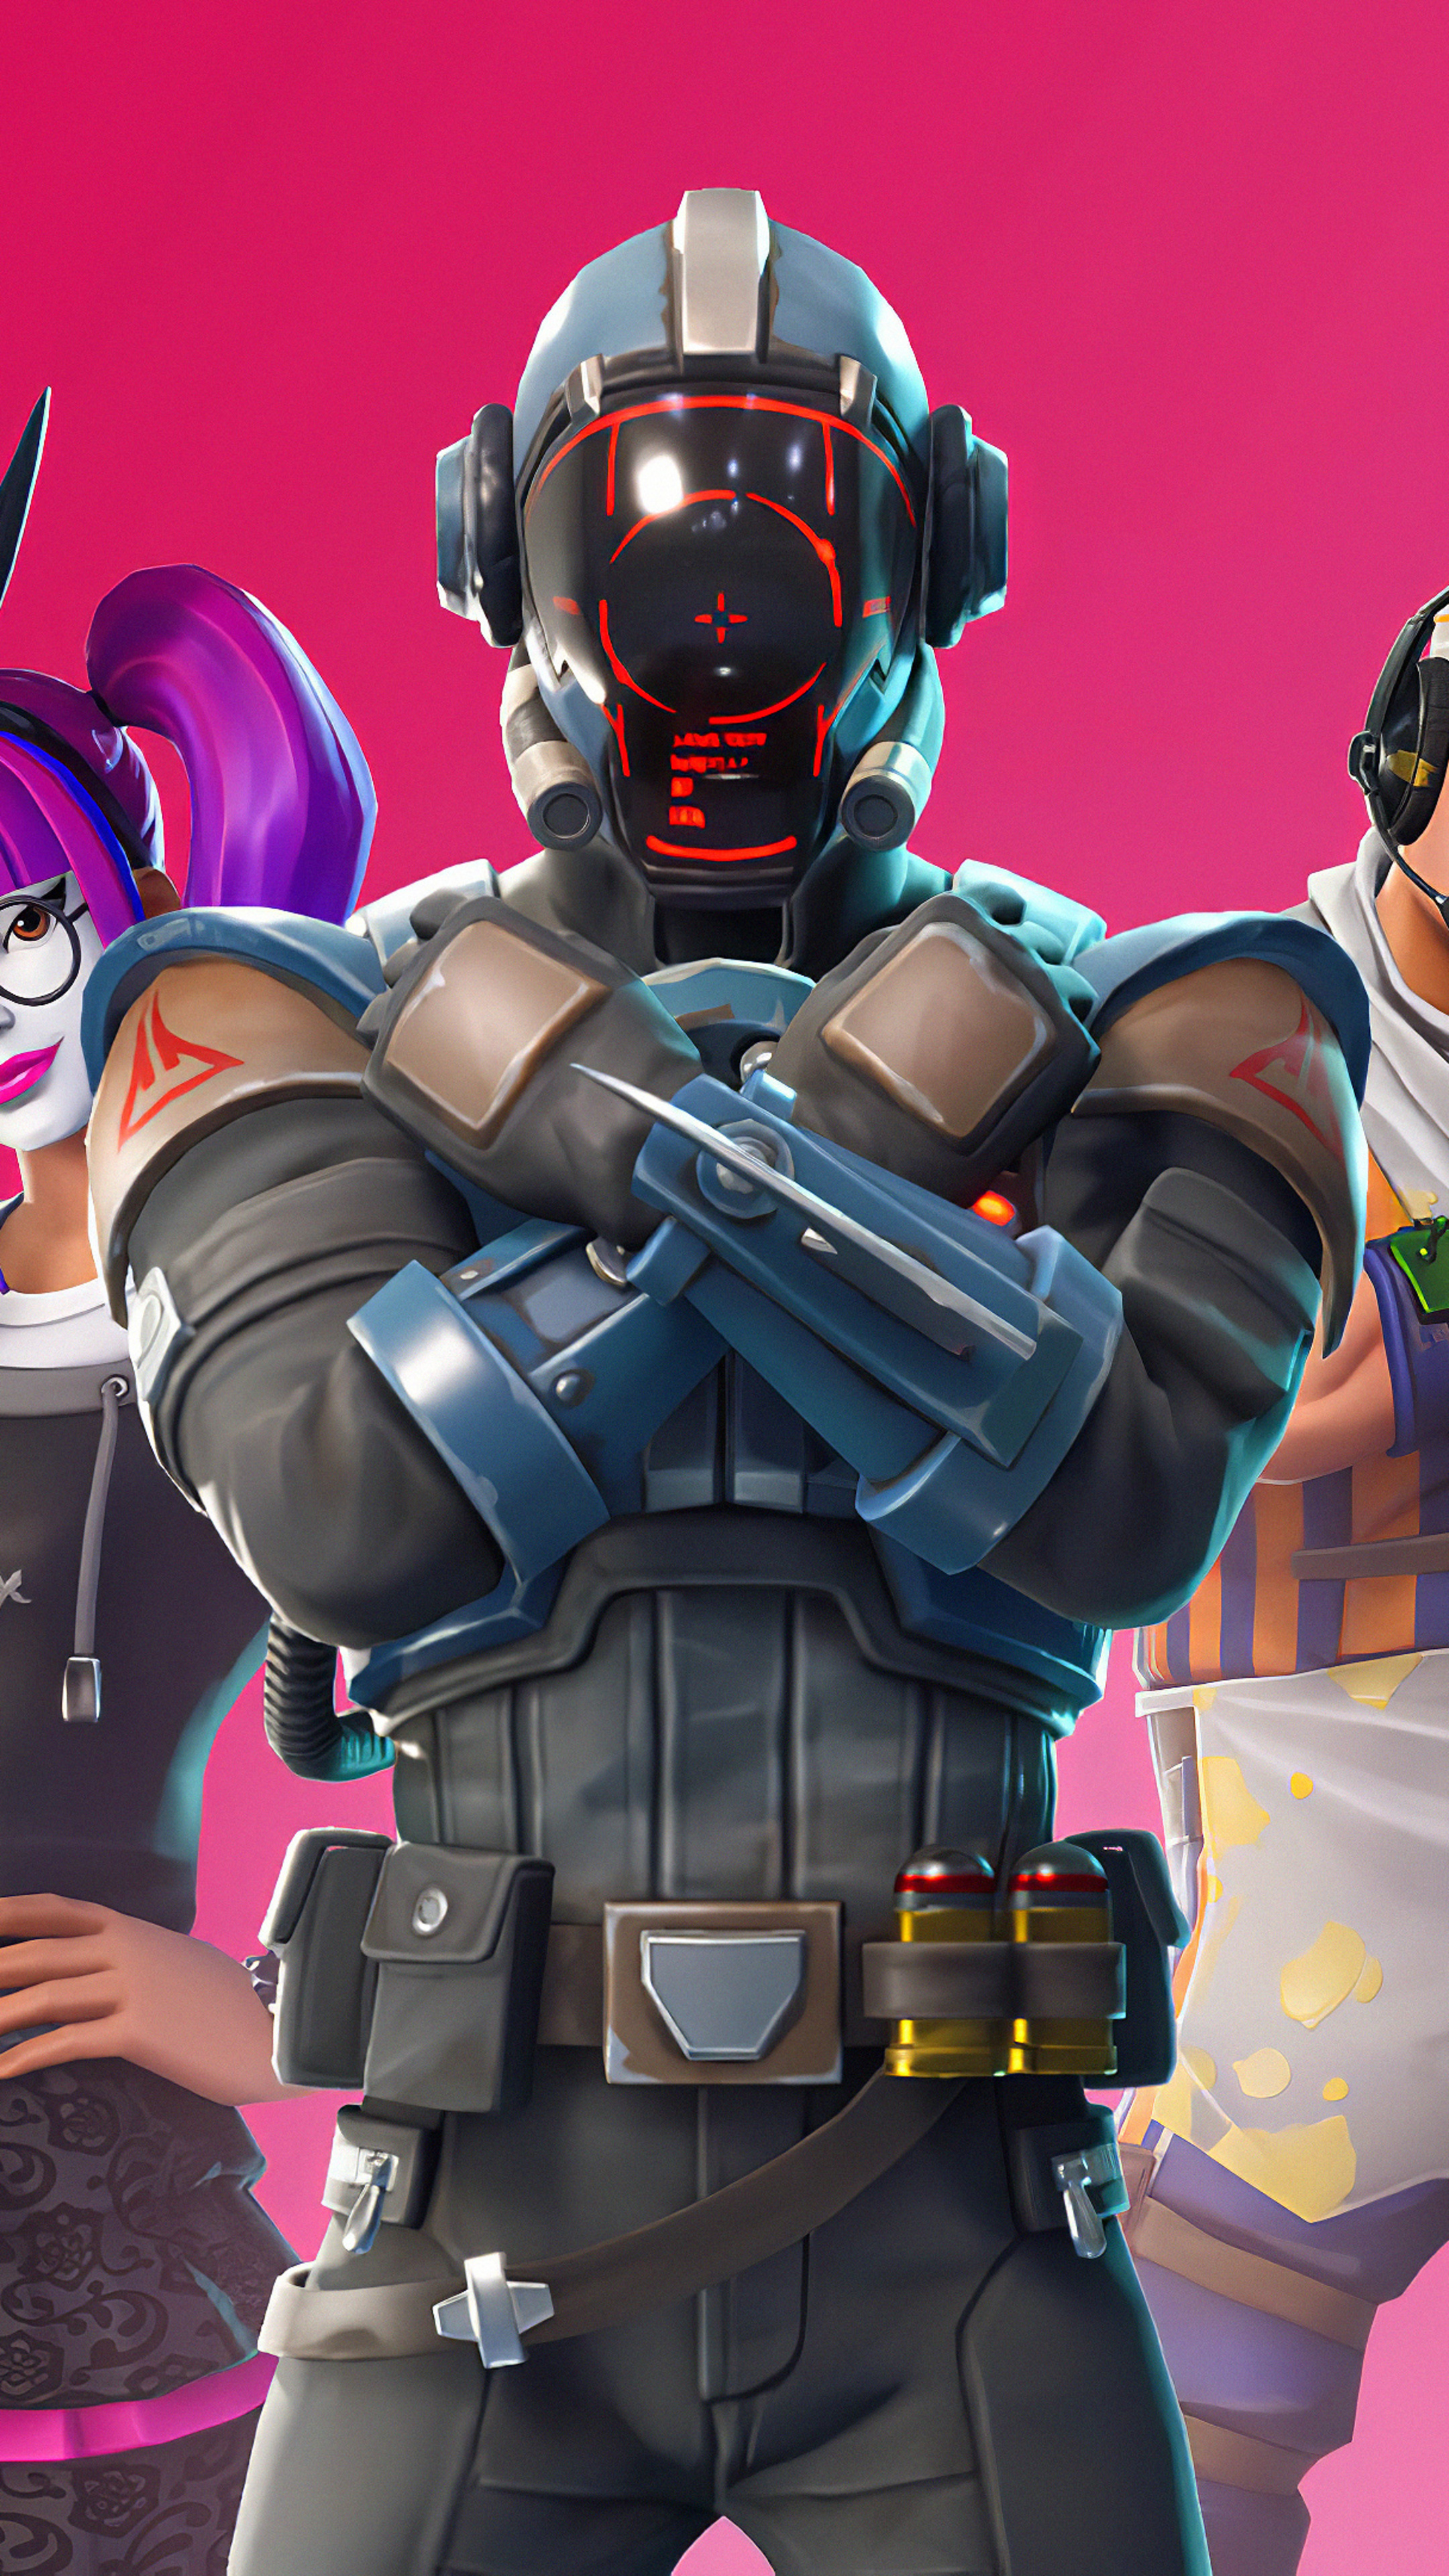 2160x3840 Fortnite Skins 4k Sony Xperia X Xz Z5 Premium Hd 4k Wallpapers Images Backgrounds Photos And Pictures